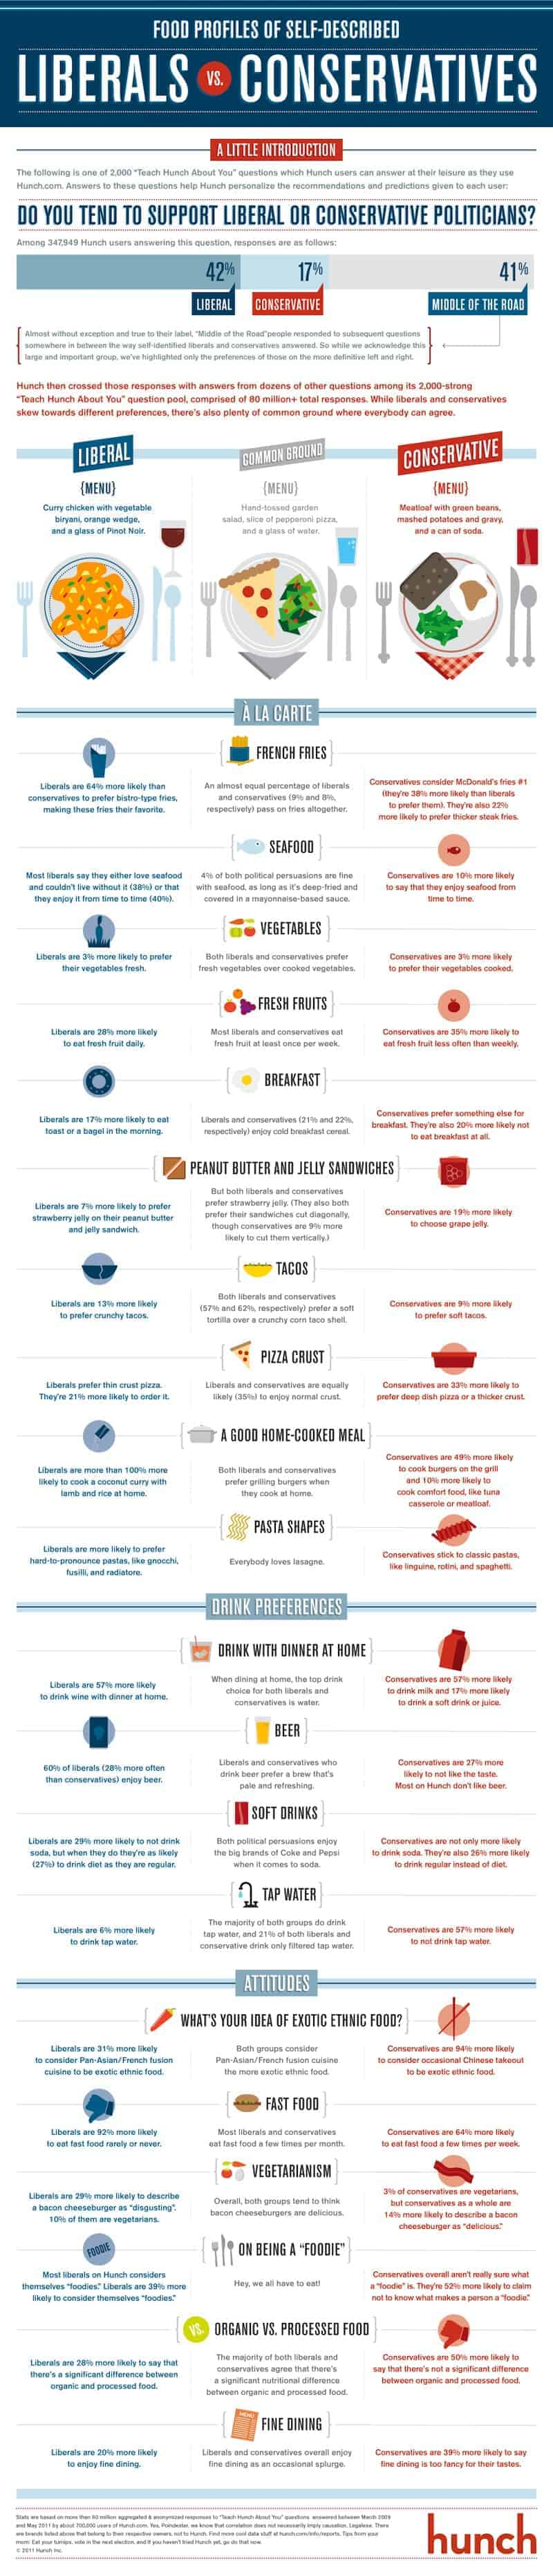 Hunch-Food-Politics-Infographic-800-1